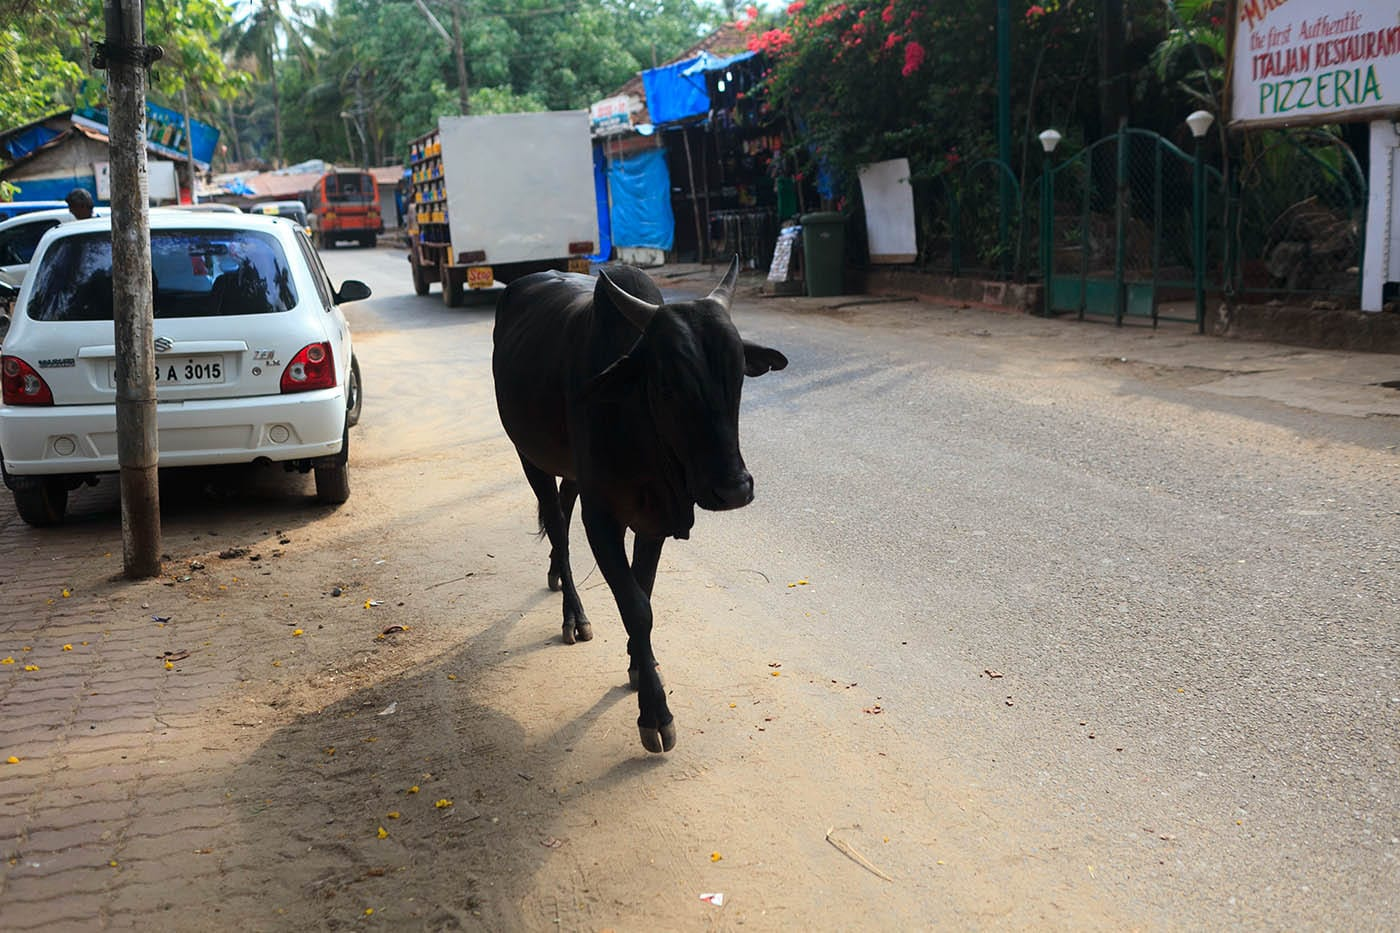 Cow on the road in Palolem, Goa, India.